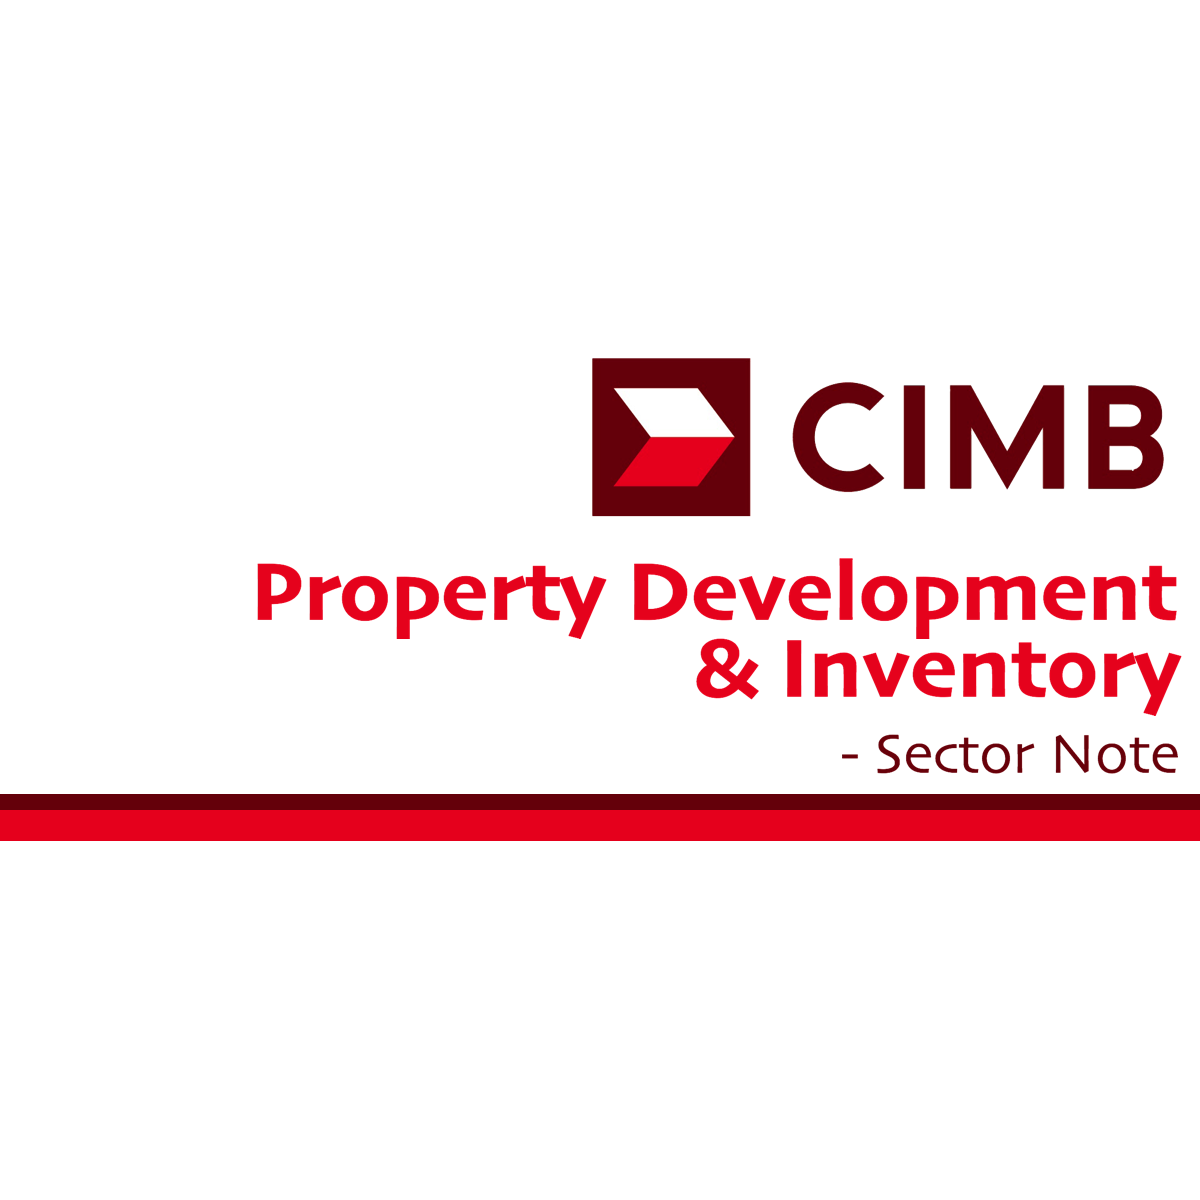 Property Development & Inventory - CIMB Research 2017-01-16: Stabilising sales